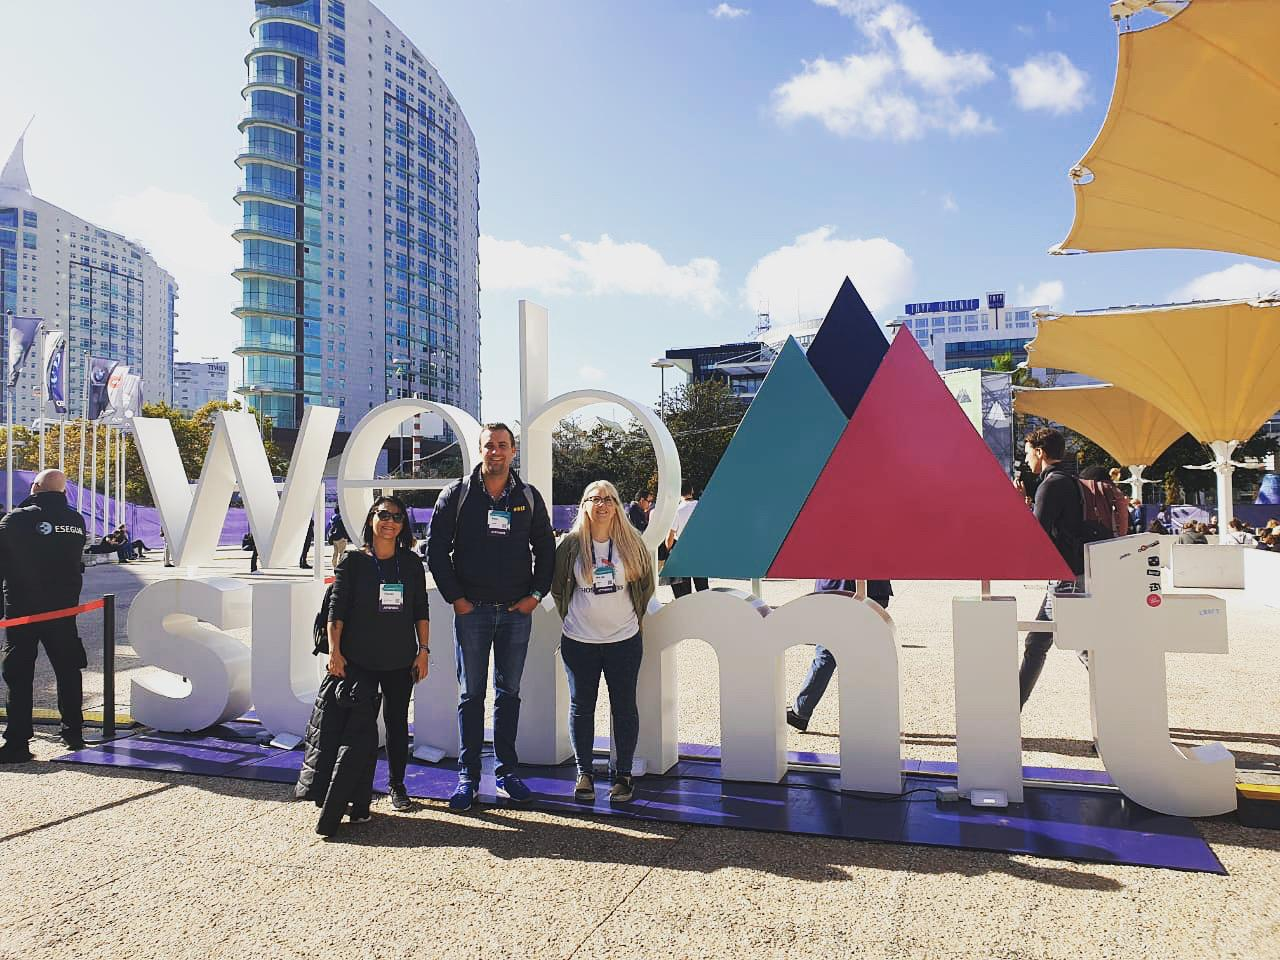 Penquin's team at WebSummit